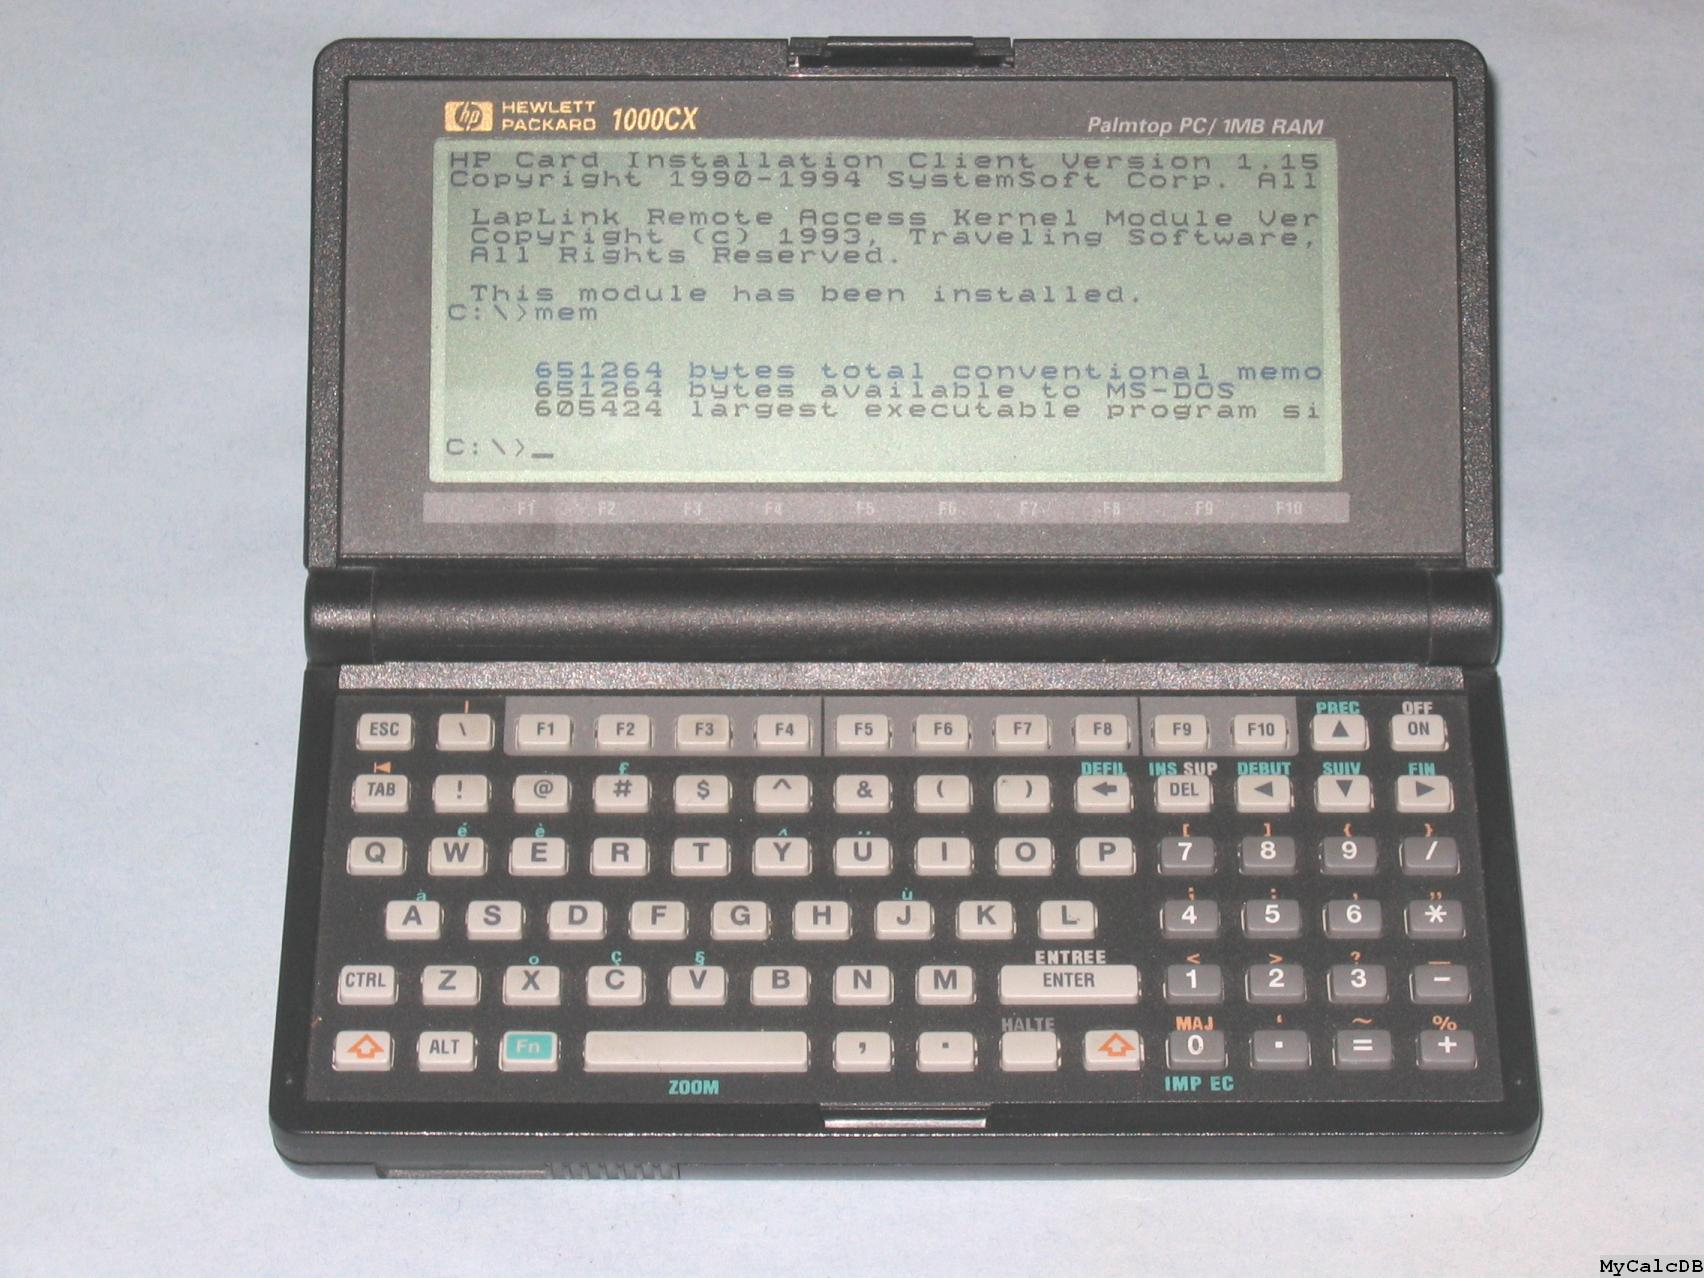 Hewlett-Packard 1000CX 2MB